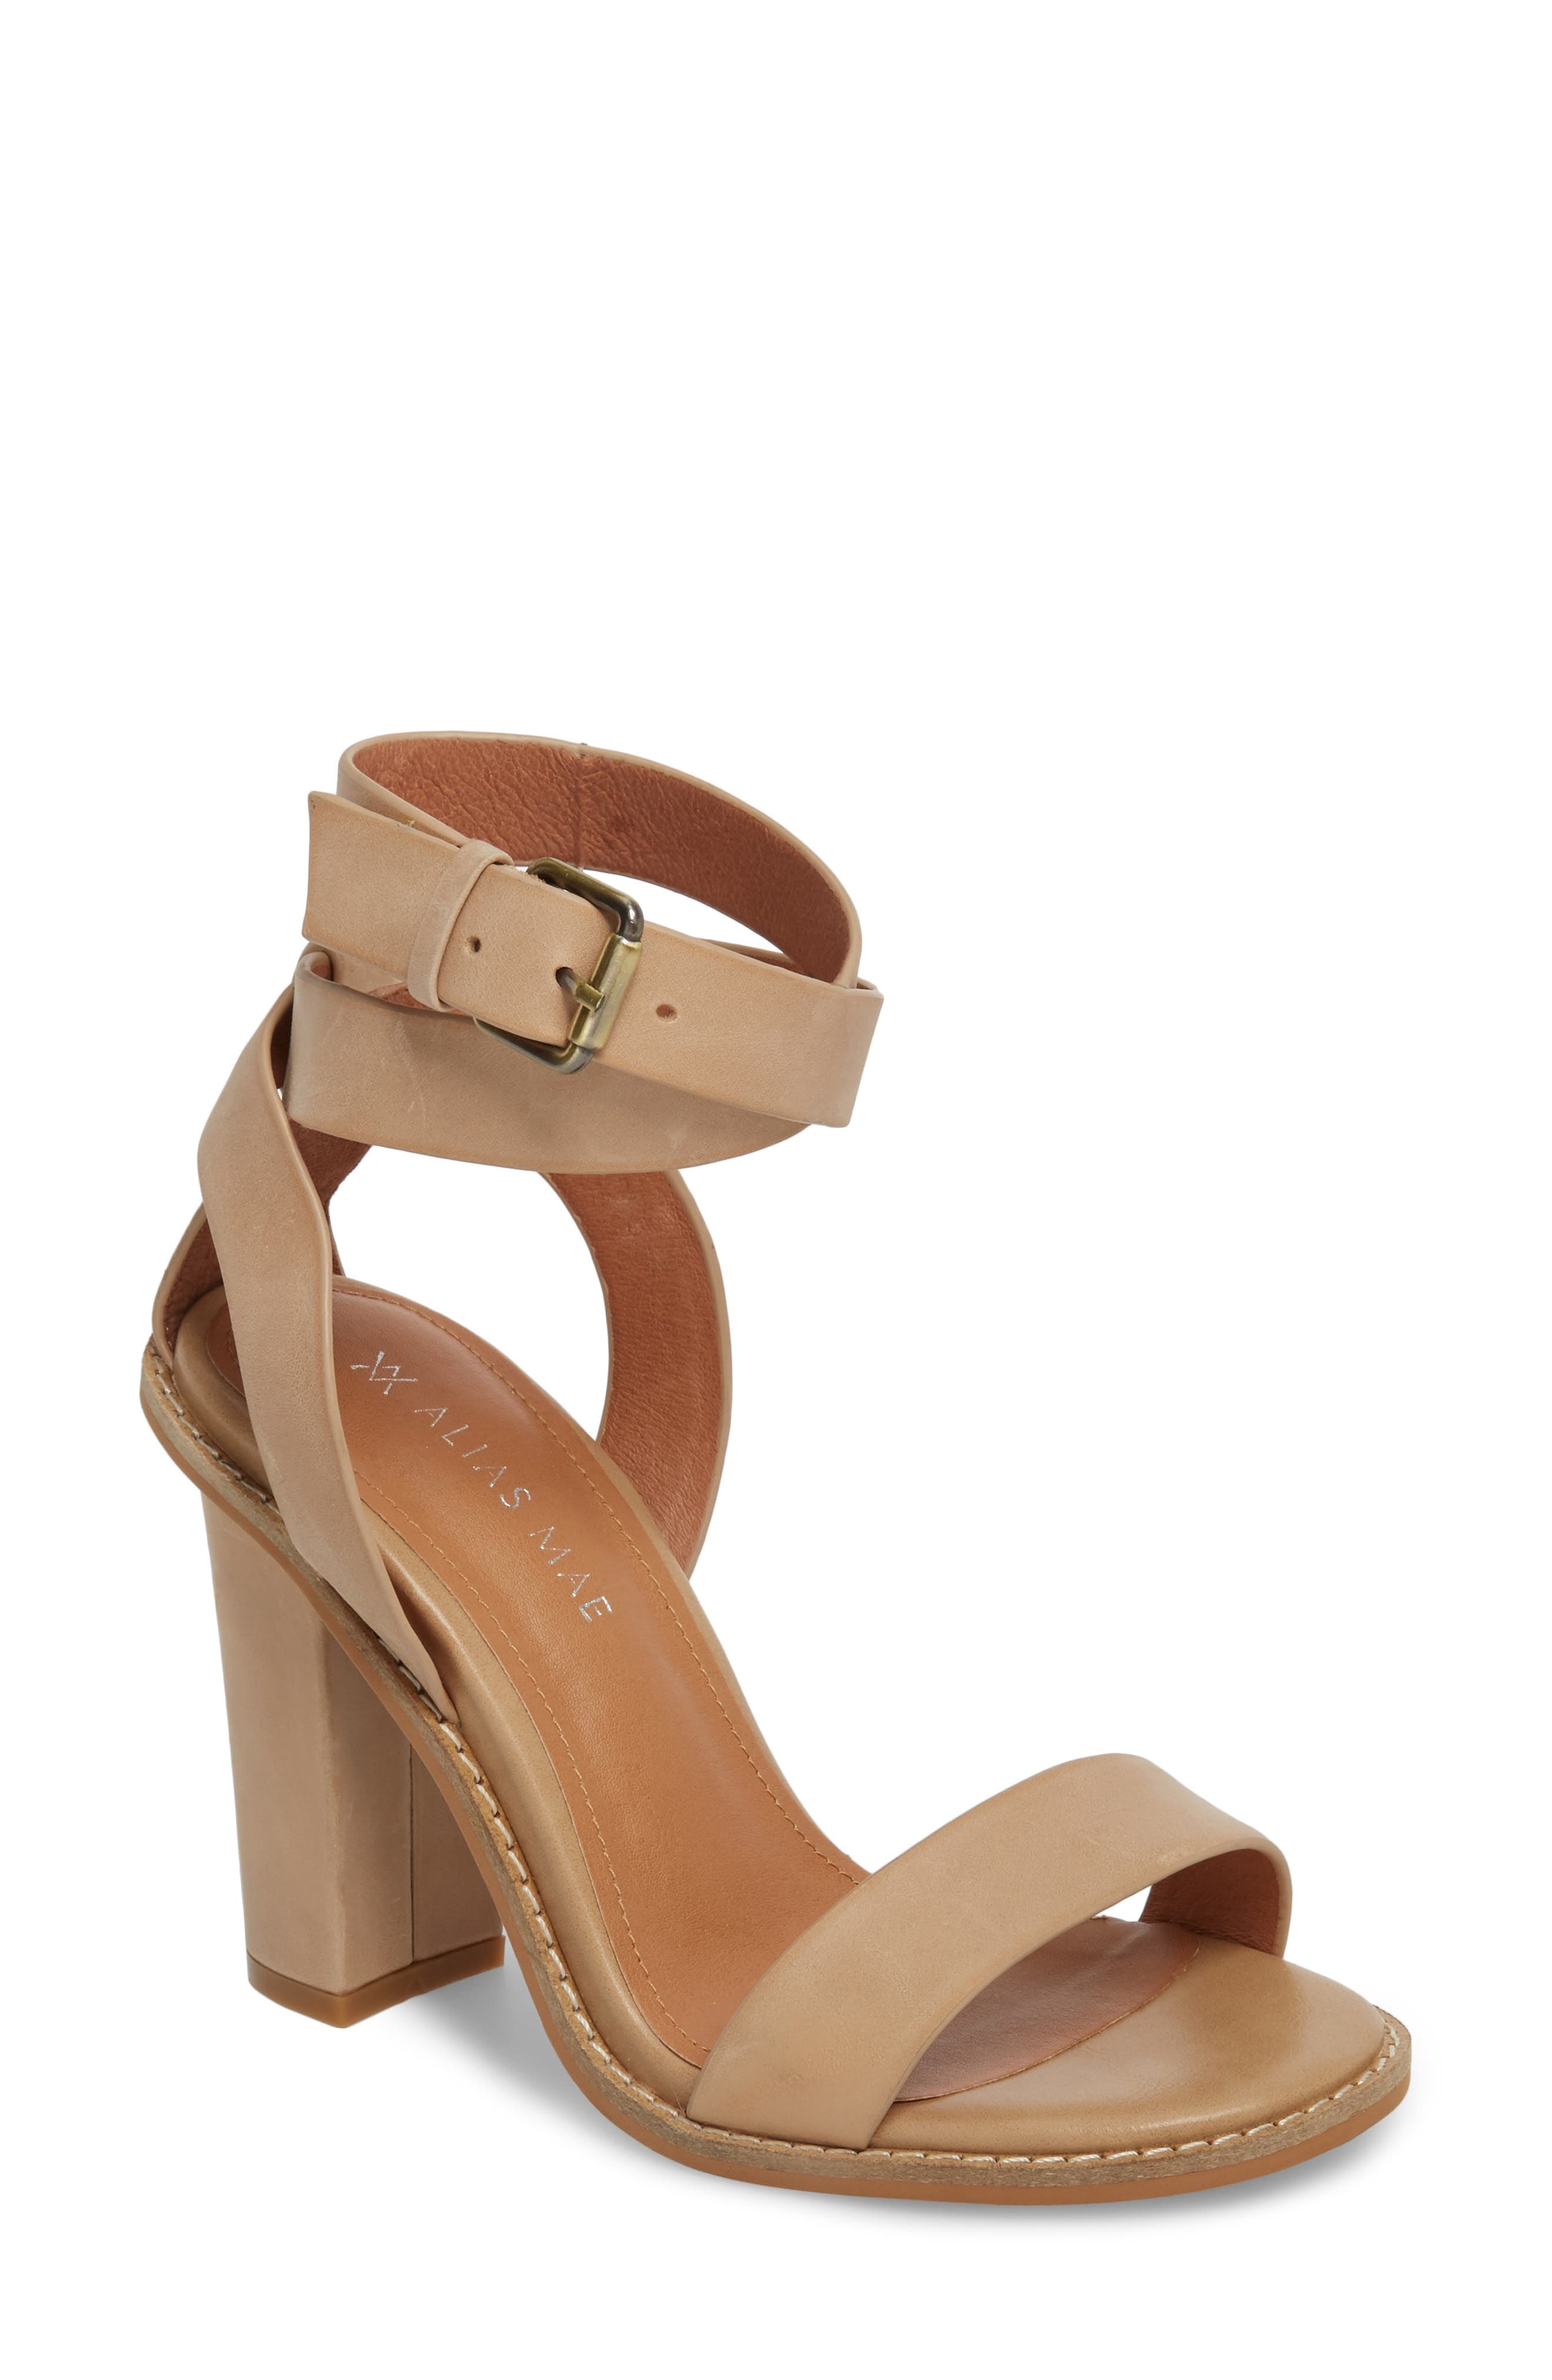 Calito Ankle Strap Sandal,                         Main,                         color, Natural Leather